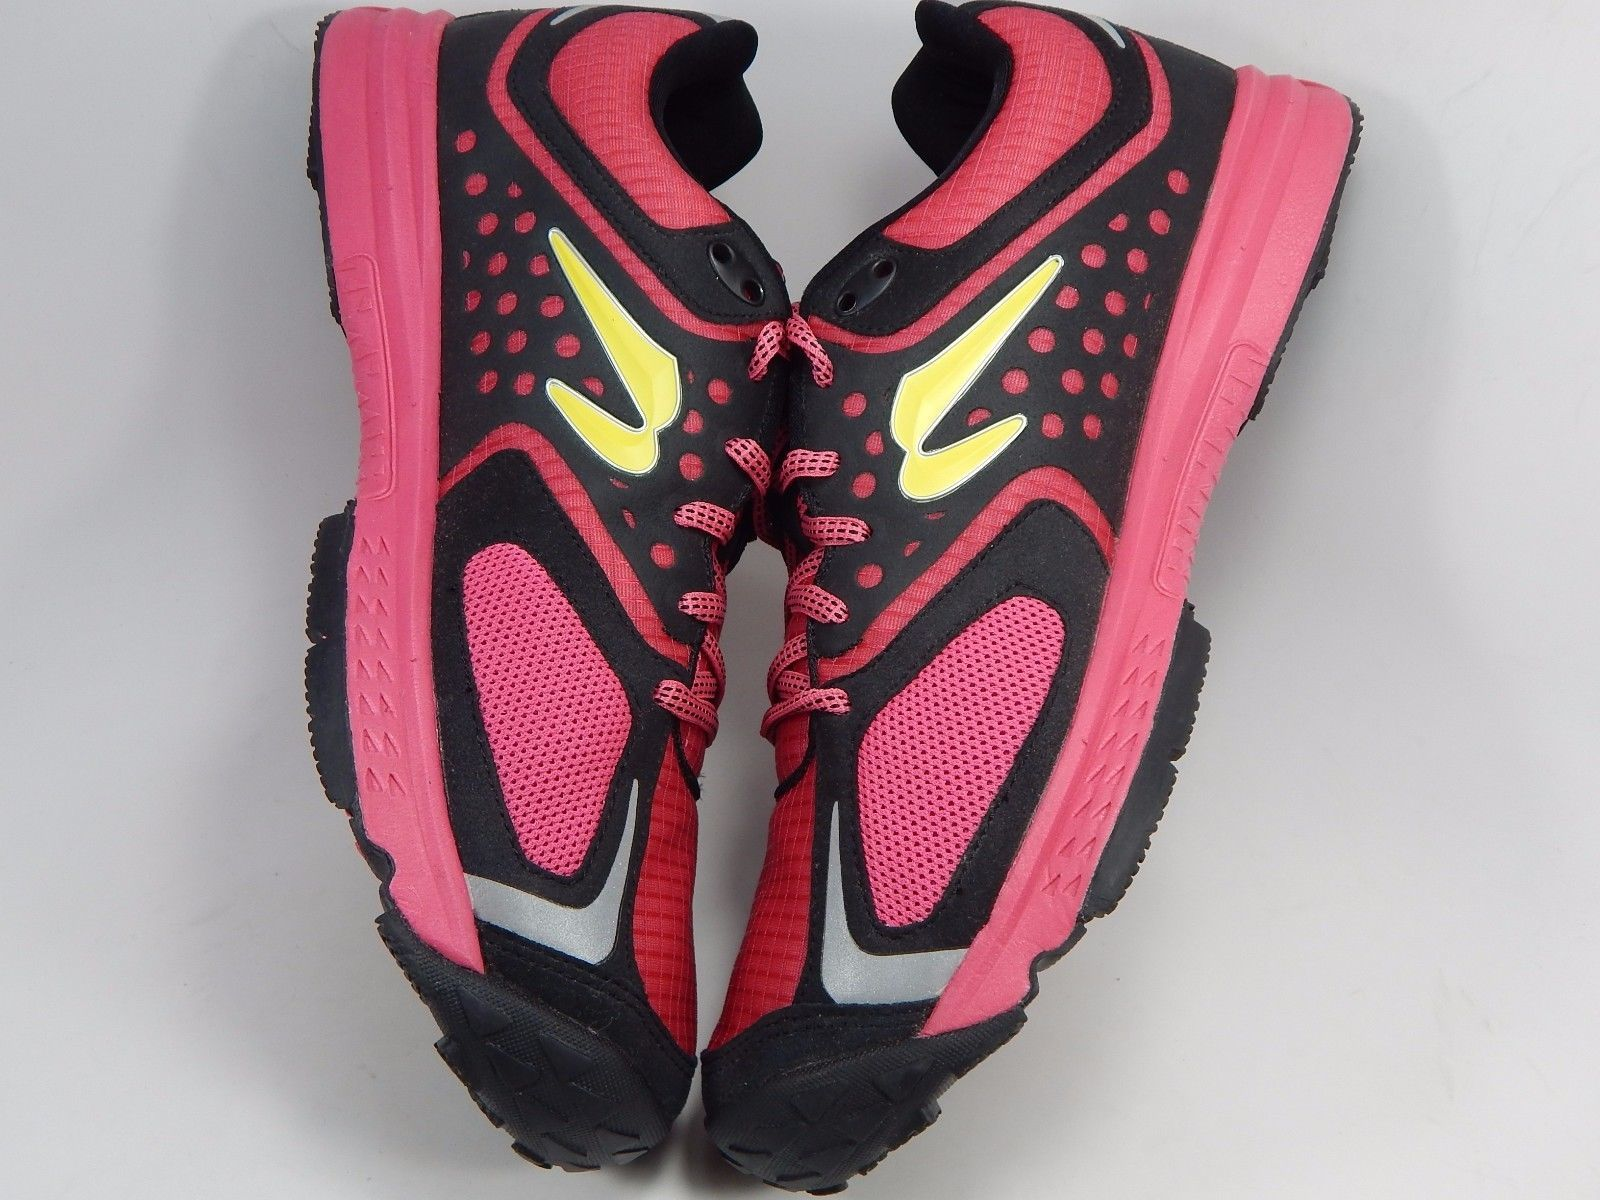 Newton Boco AT Women's Trail Running Shoes Size US 11.5 M (B) EU 43 Pink 005113